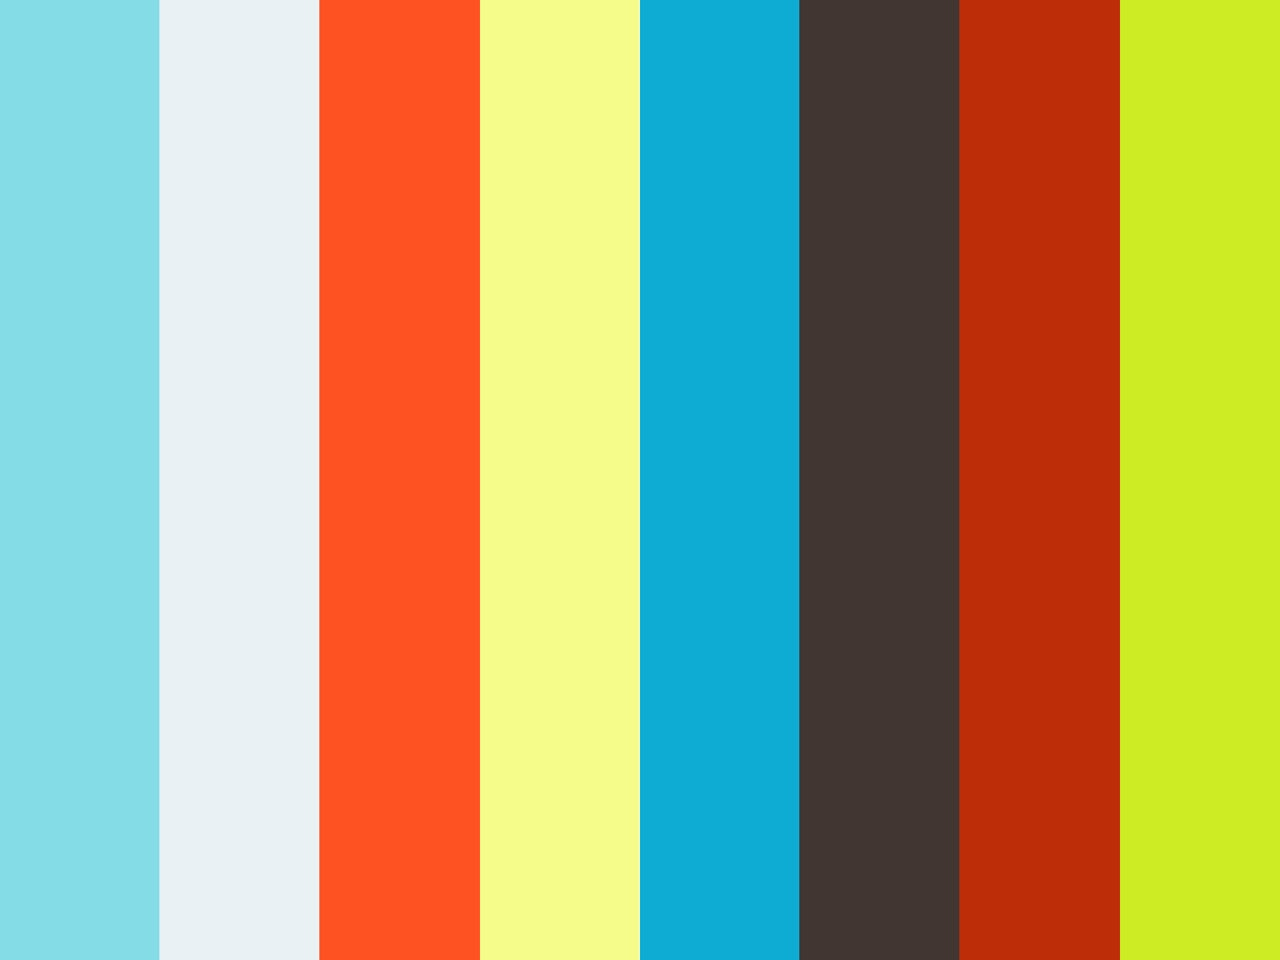 Introducing the Colorgrid